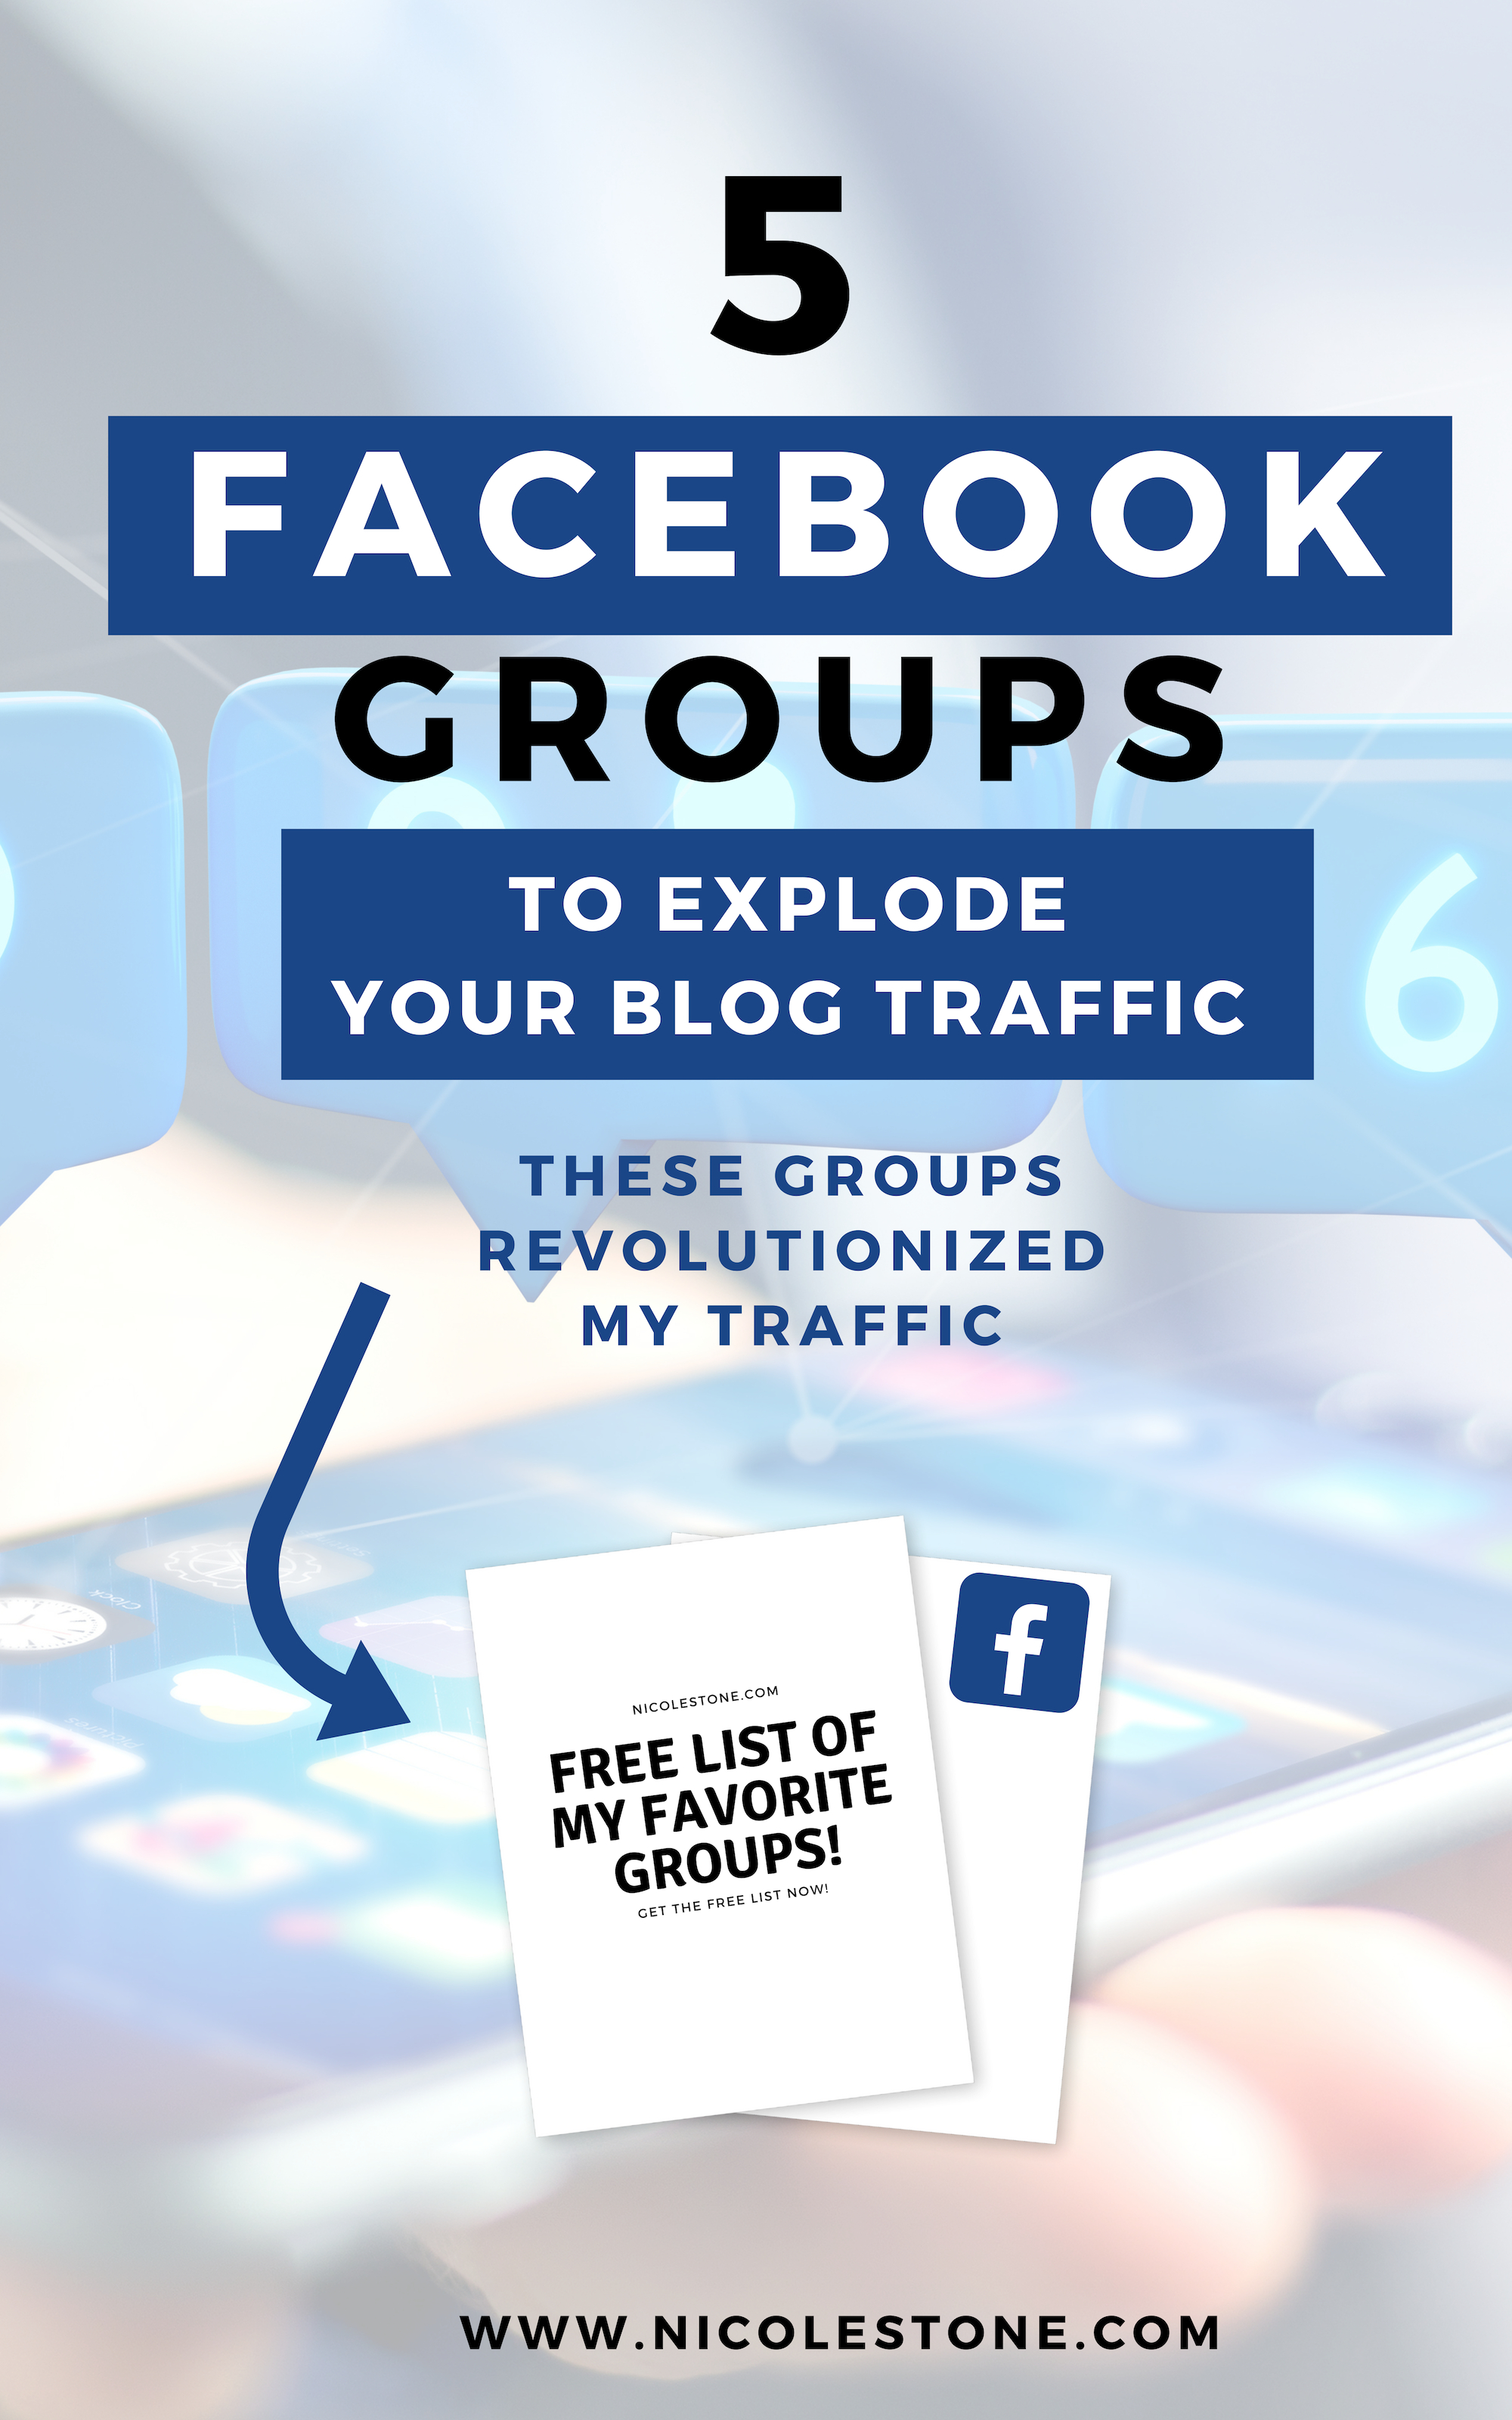 Grab these 5 Facebook groups that will EXPLODE your blog traffic and brand awareness. These have participation threads, connections, and are hosted by some VERY successful entrepreneurs. Get my 5 favorite Facebook groups to multiple your marketing strategy here. #facebook #blogging #blog #marketing #blogtraffic